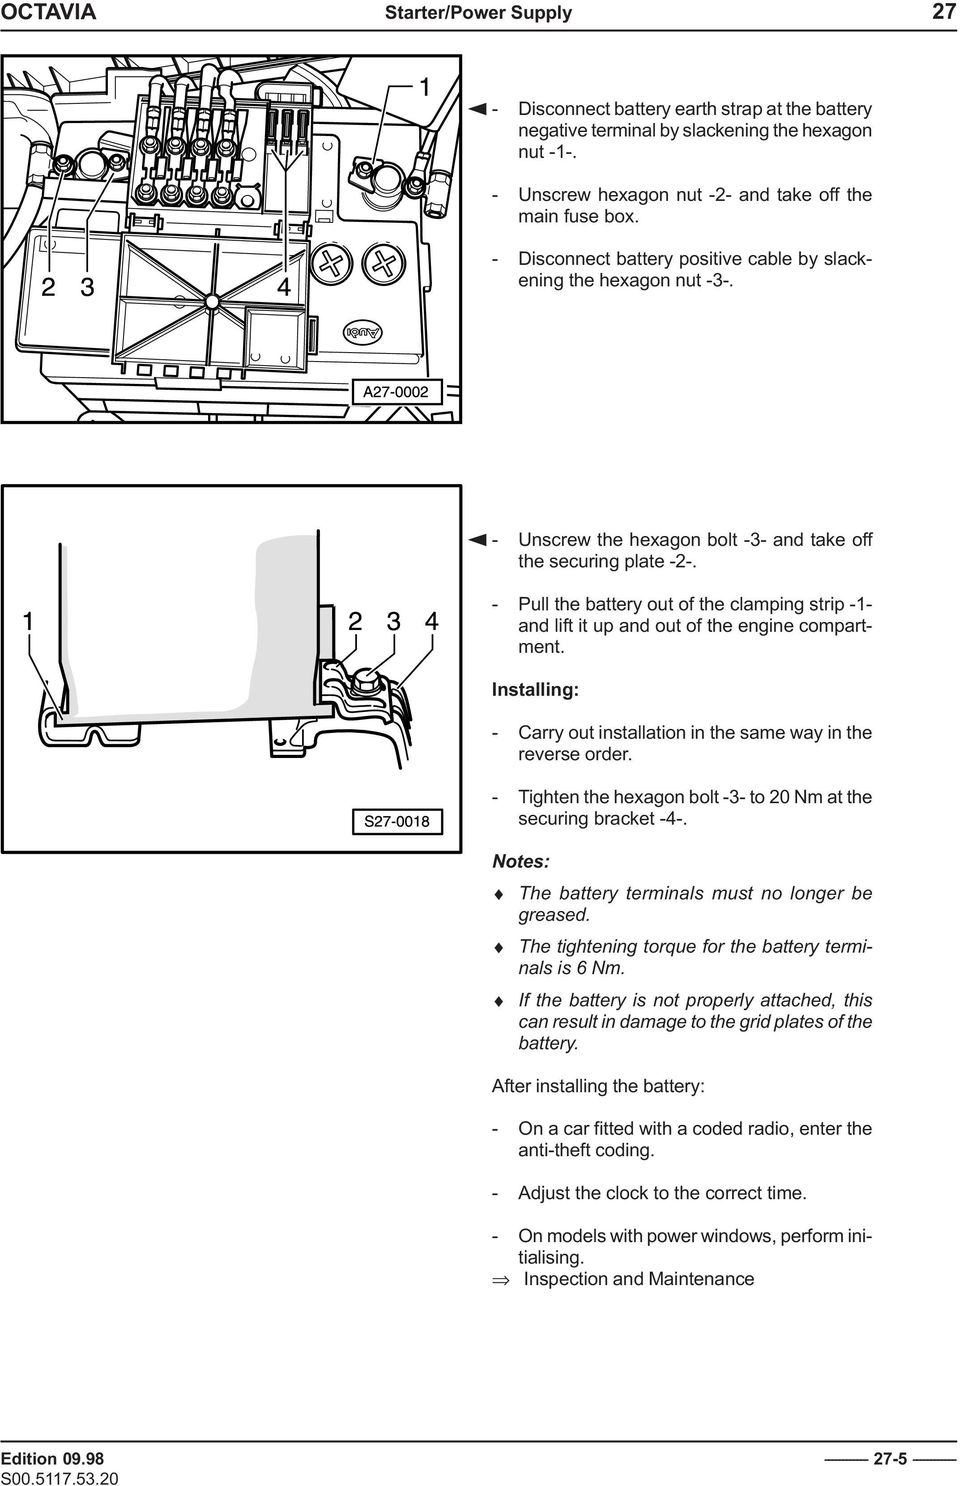 How To Wire A 4 Way Switch Wiring Diagram In Addition Skoda Fabia 1 4